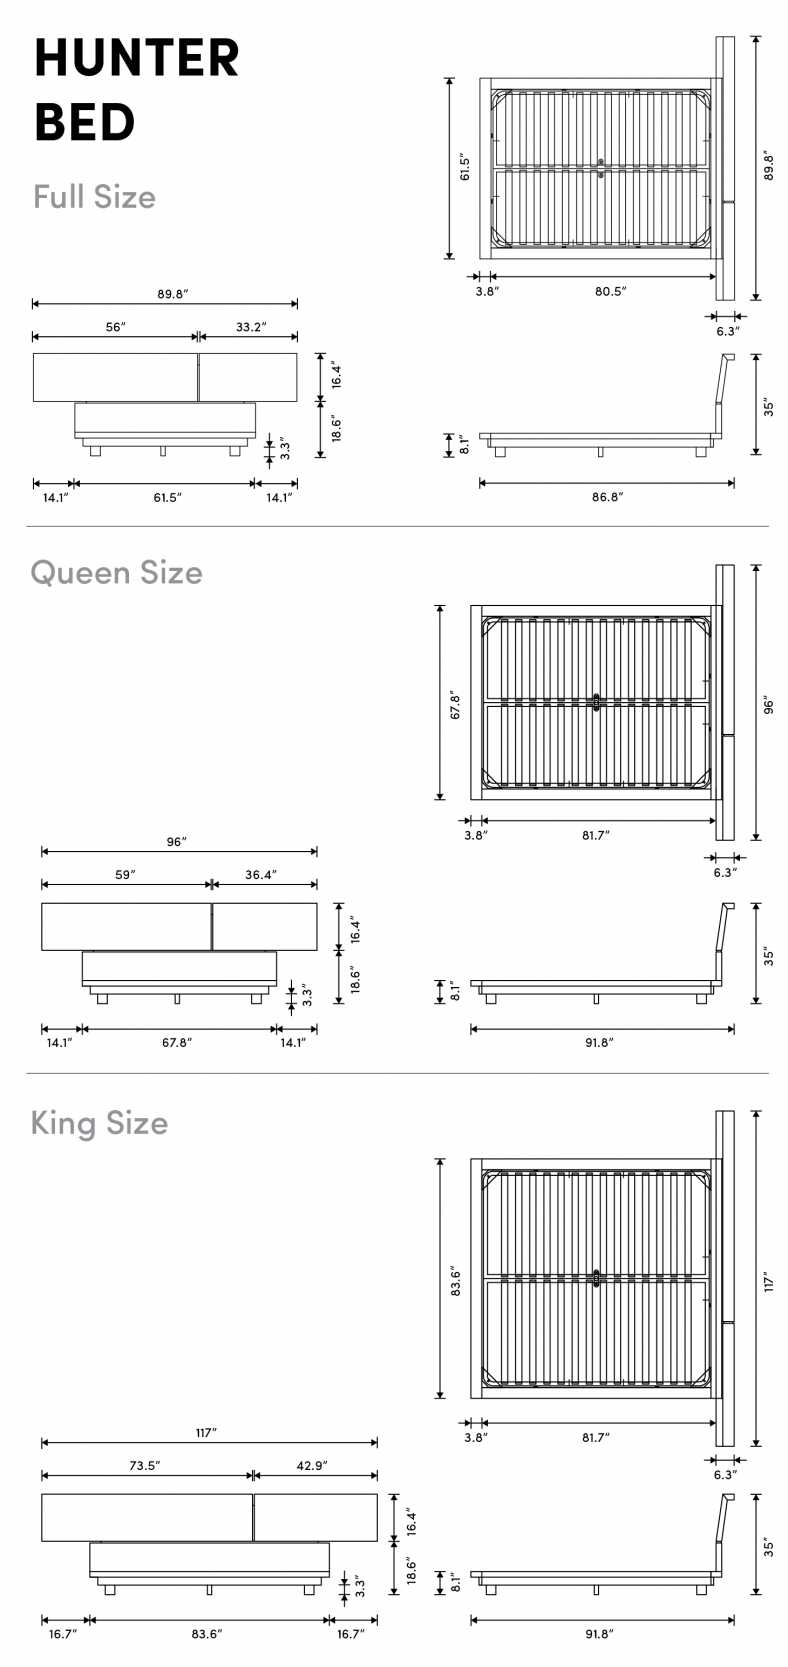 Dimensions for Hunter Bed